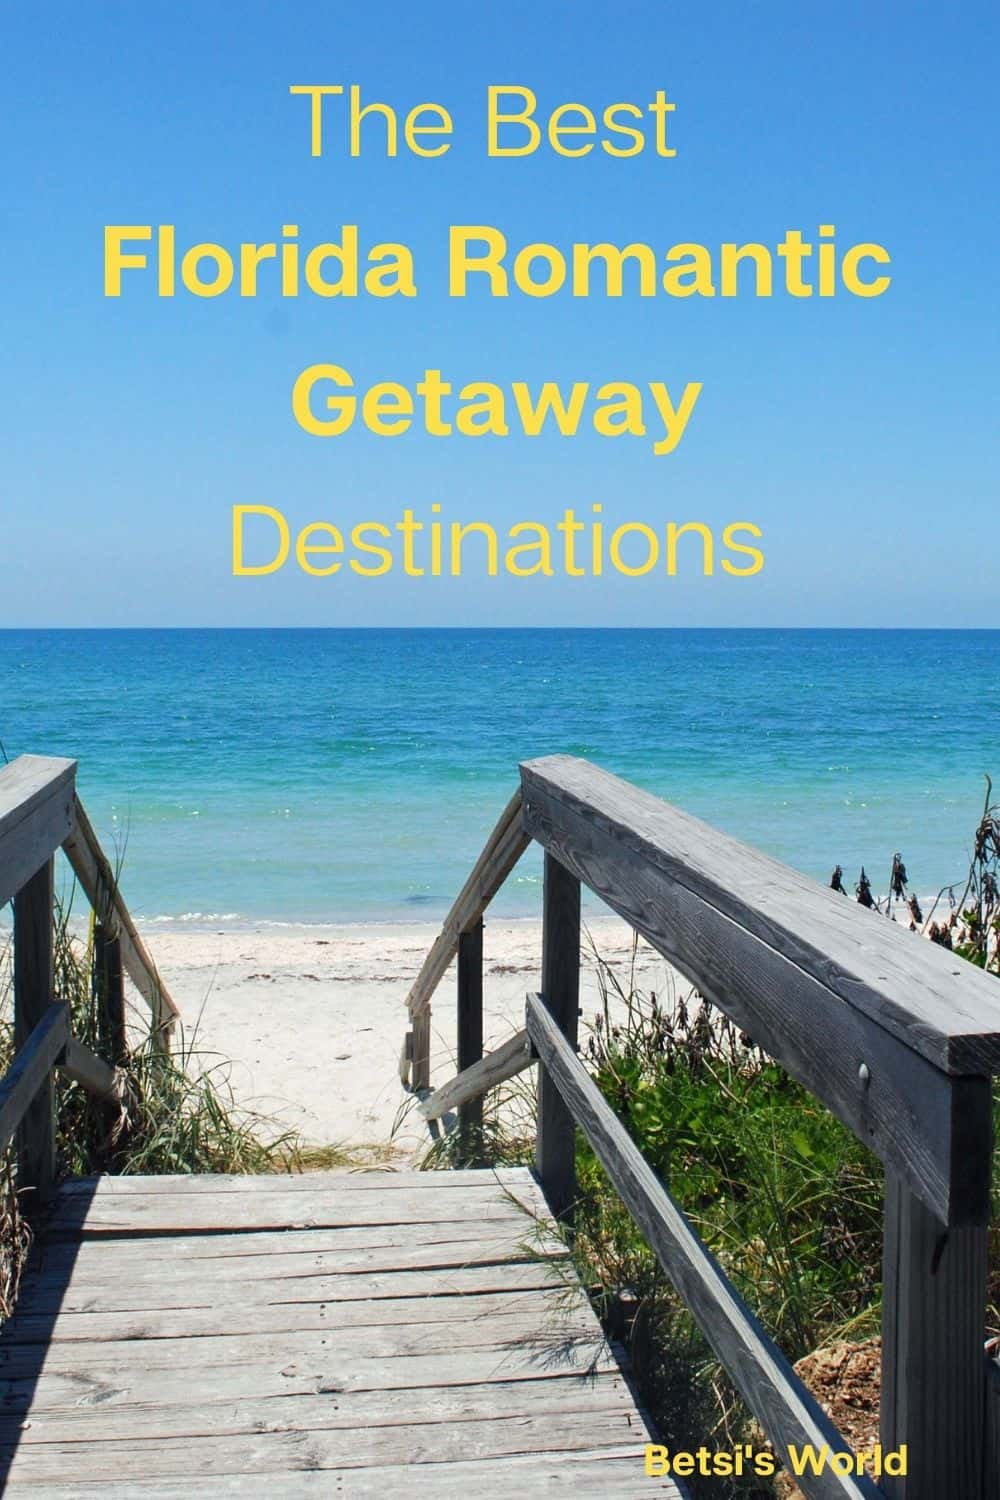 These top five romantic #Florida getaways will have you packing your bag! With fresh air, water sports, beaches, great food, shopping, and more, these are our favorite romantic getaways in the Sunshine state. #Floridavacation #romanticgetaway #Floridagetaway